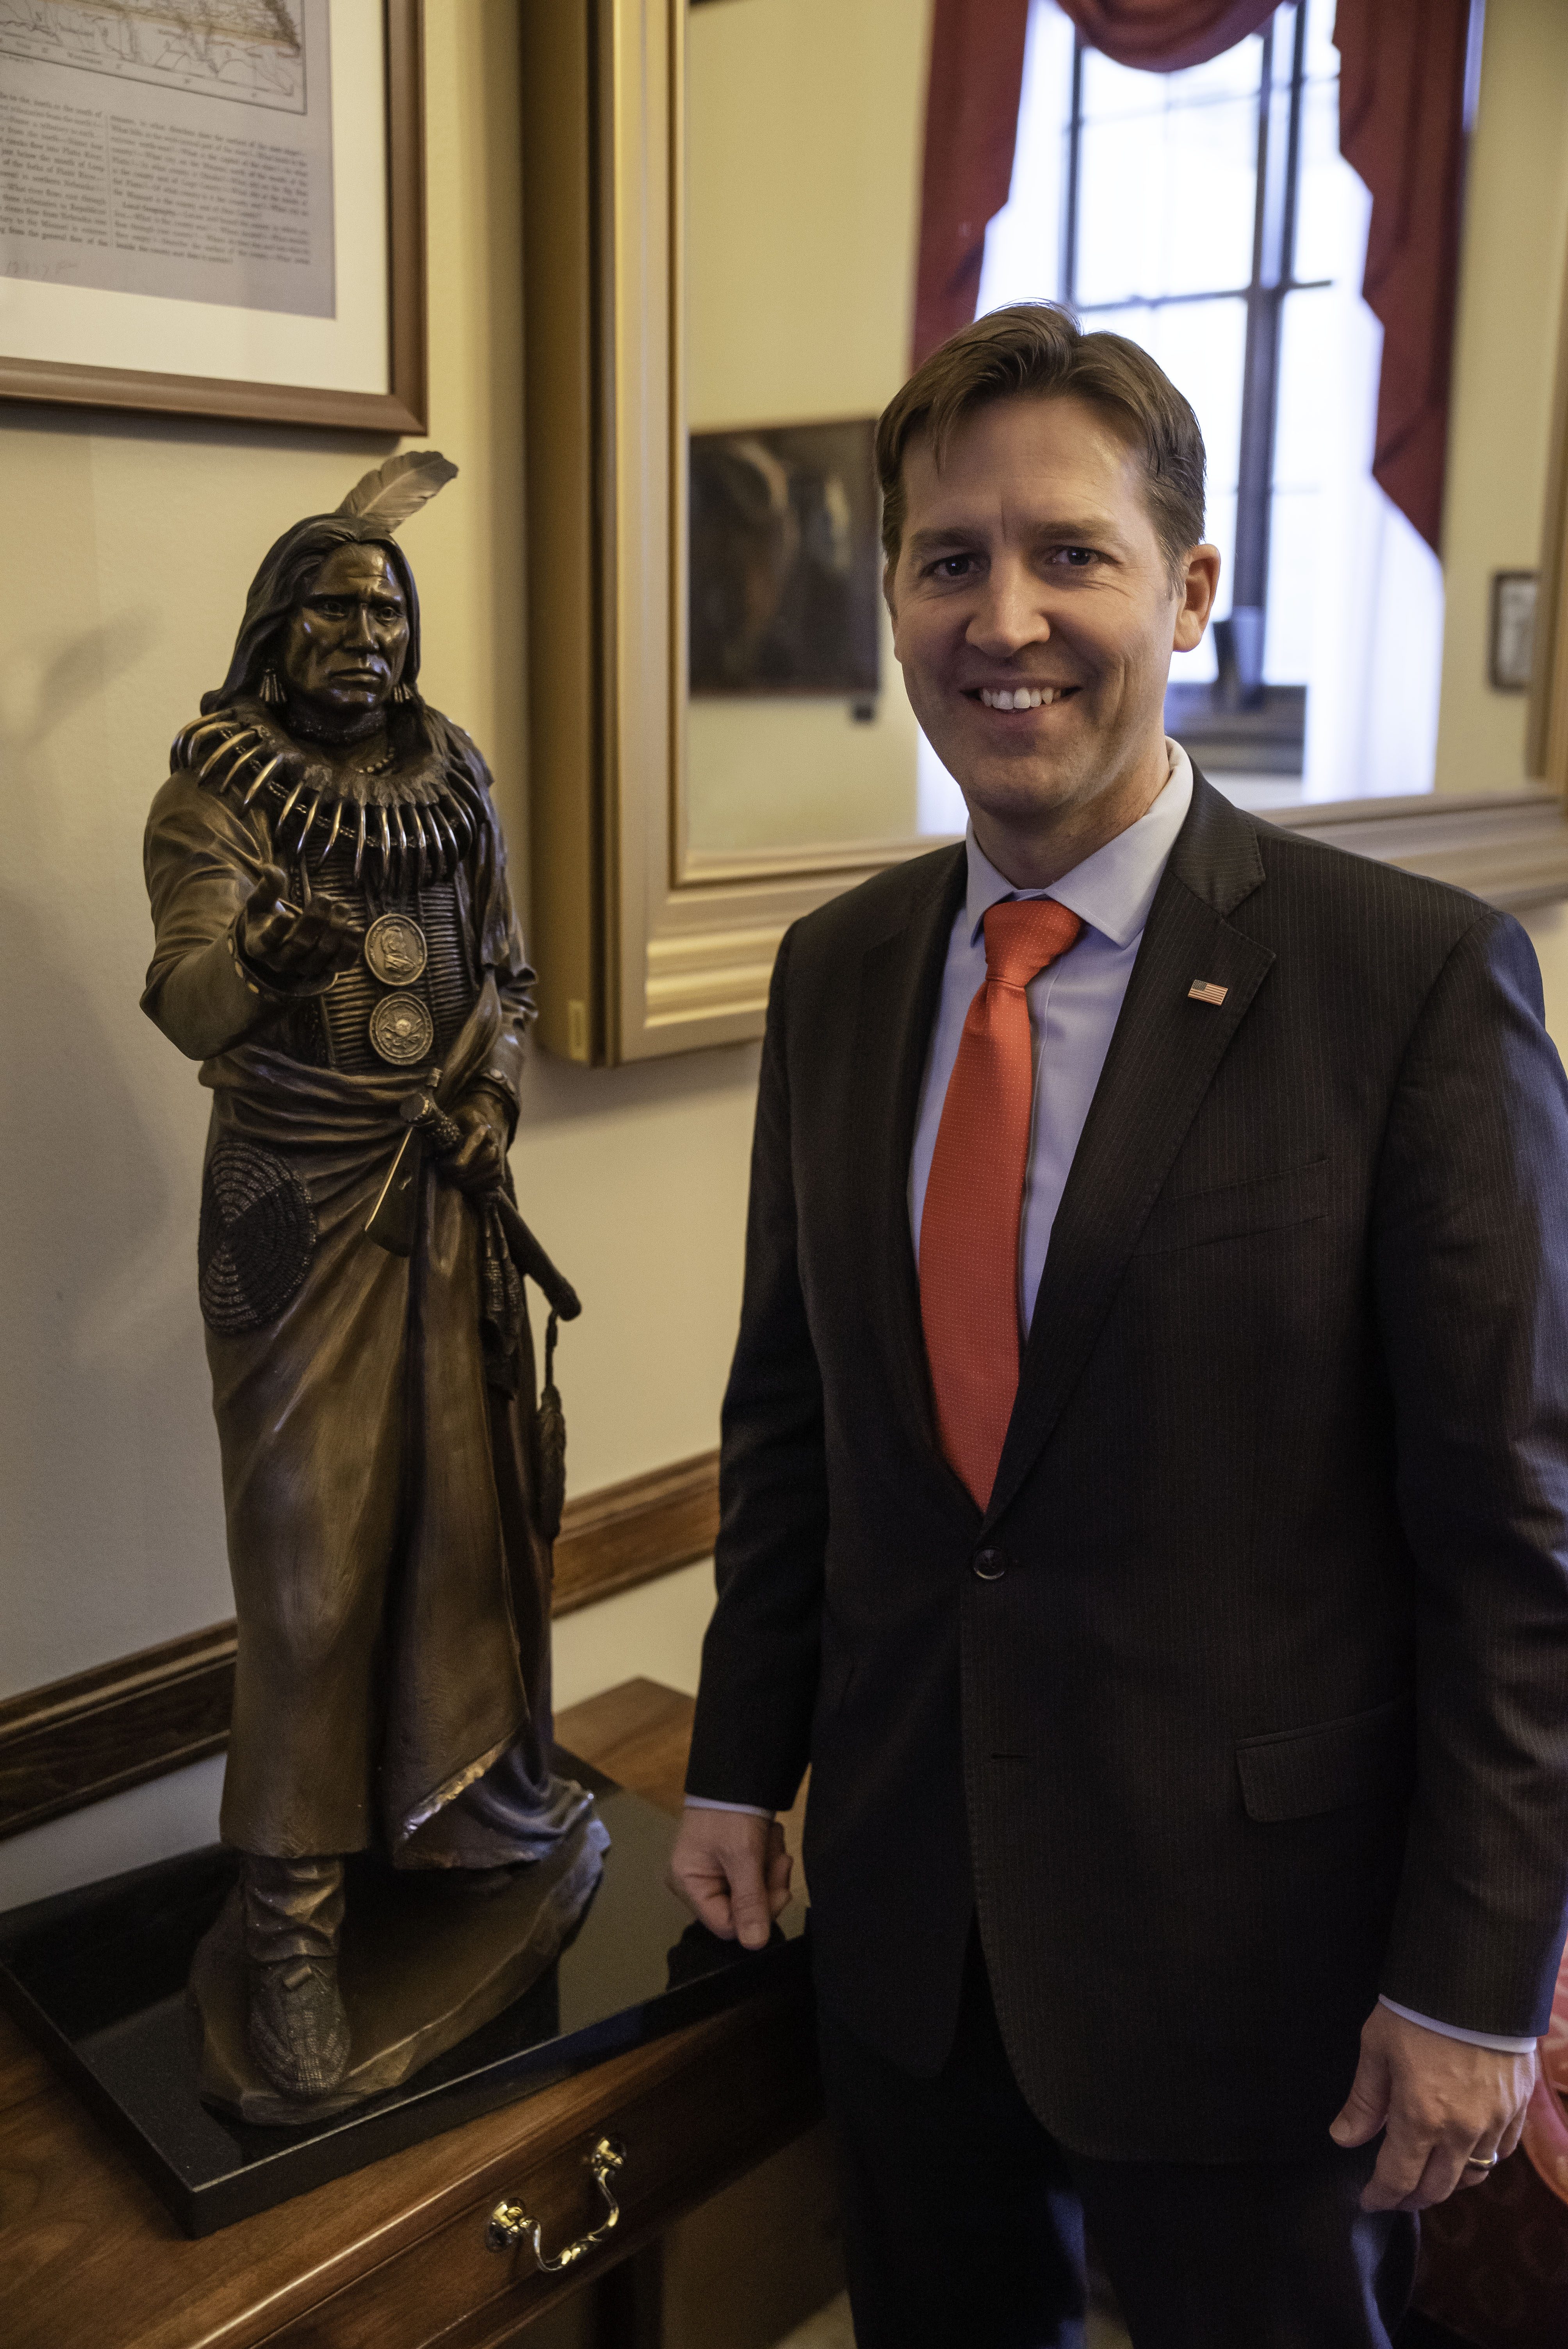 Sasse with Standing Bear Maquette